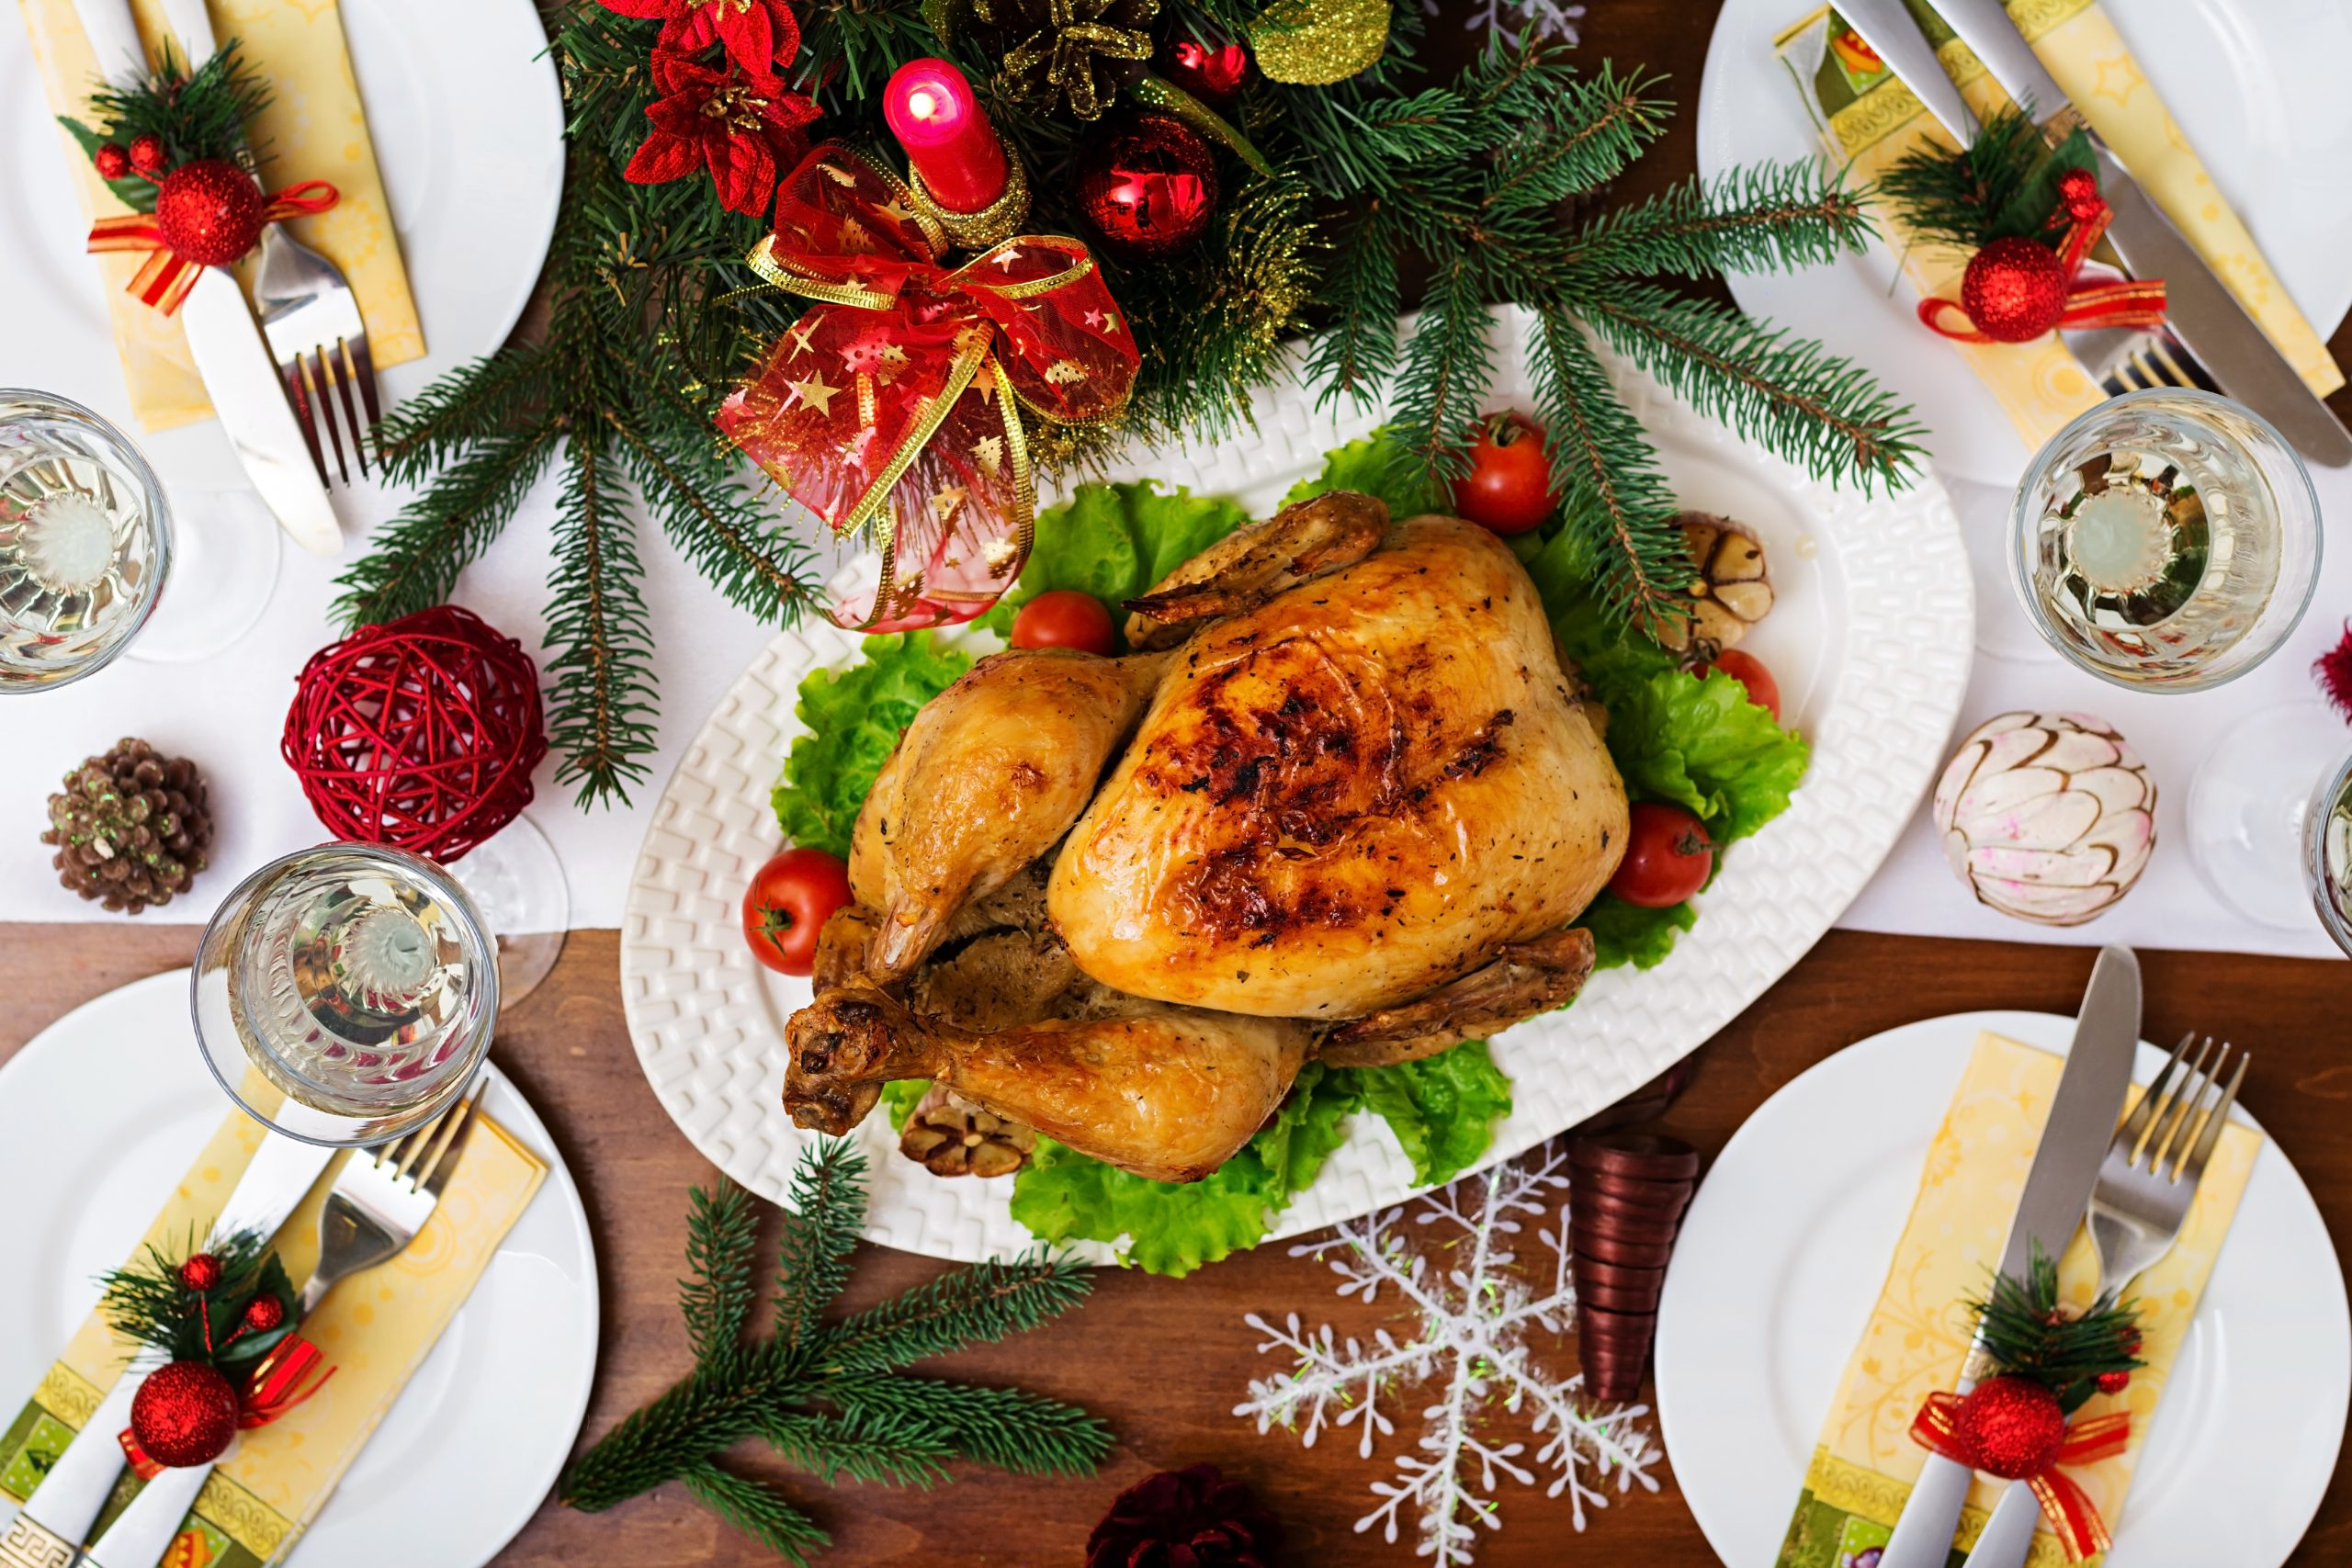 Credit: Getty | Health benefits of Christmas dinner